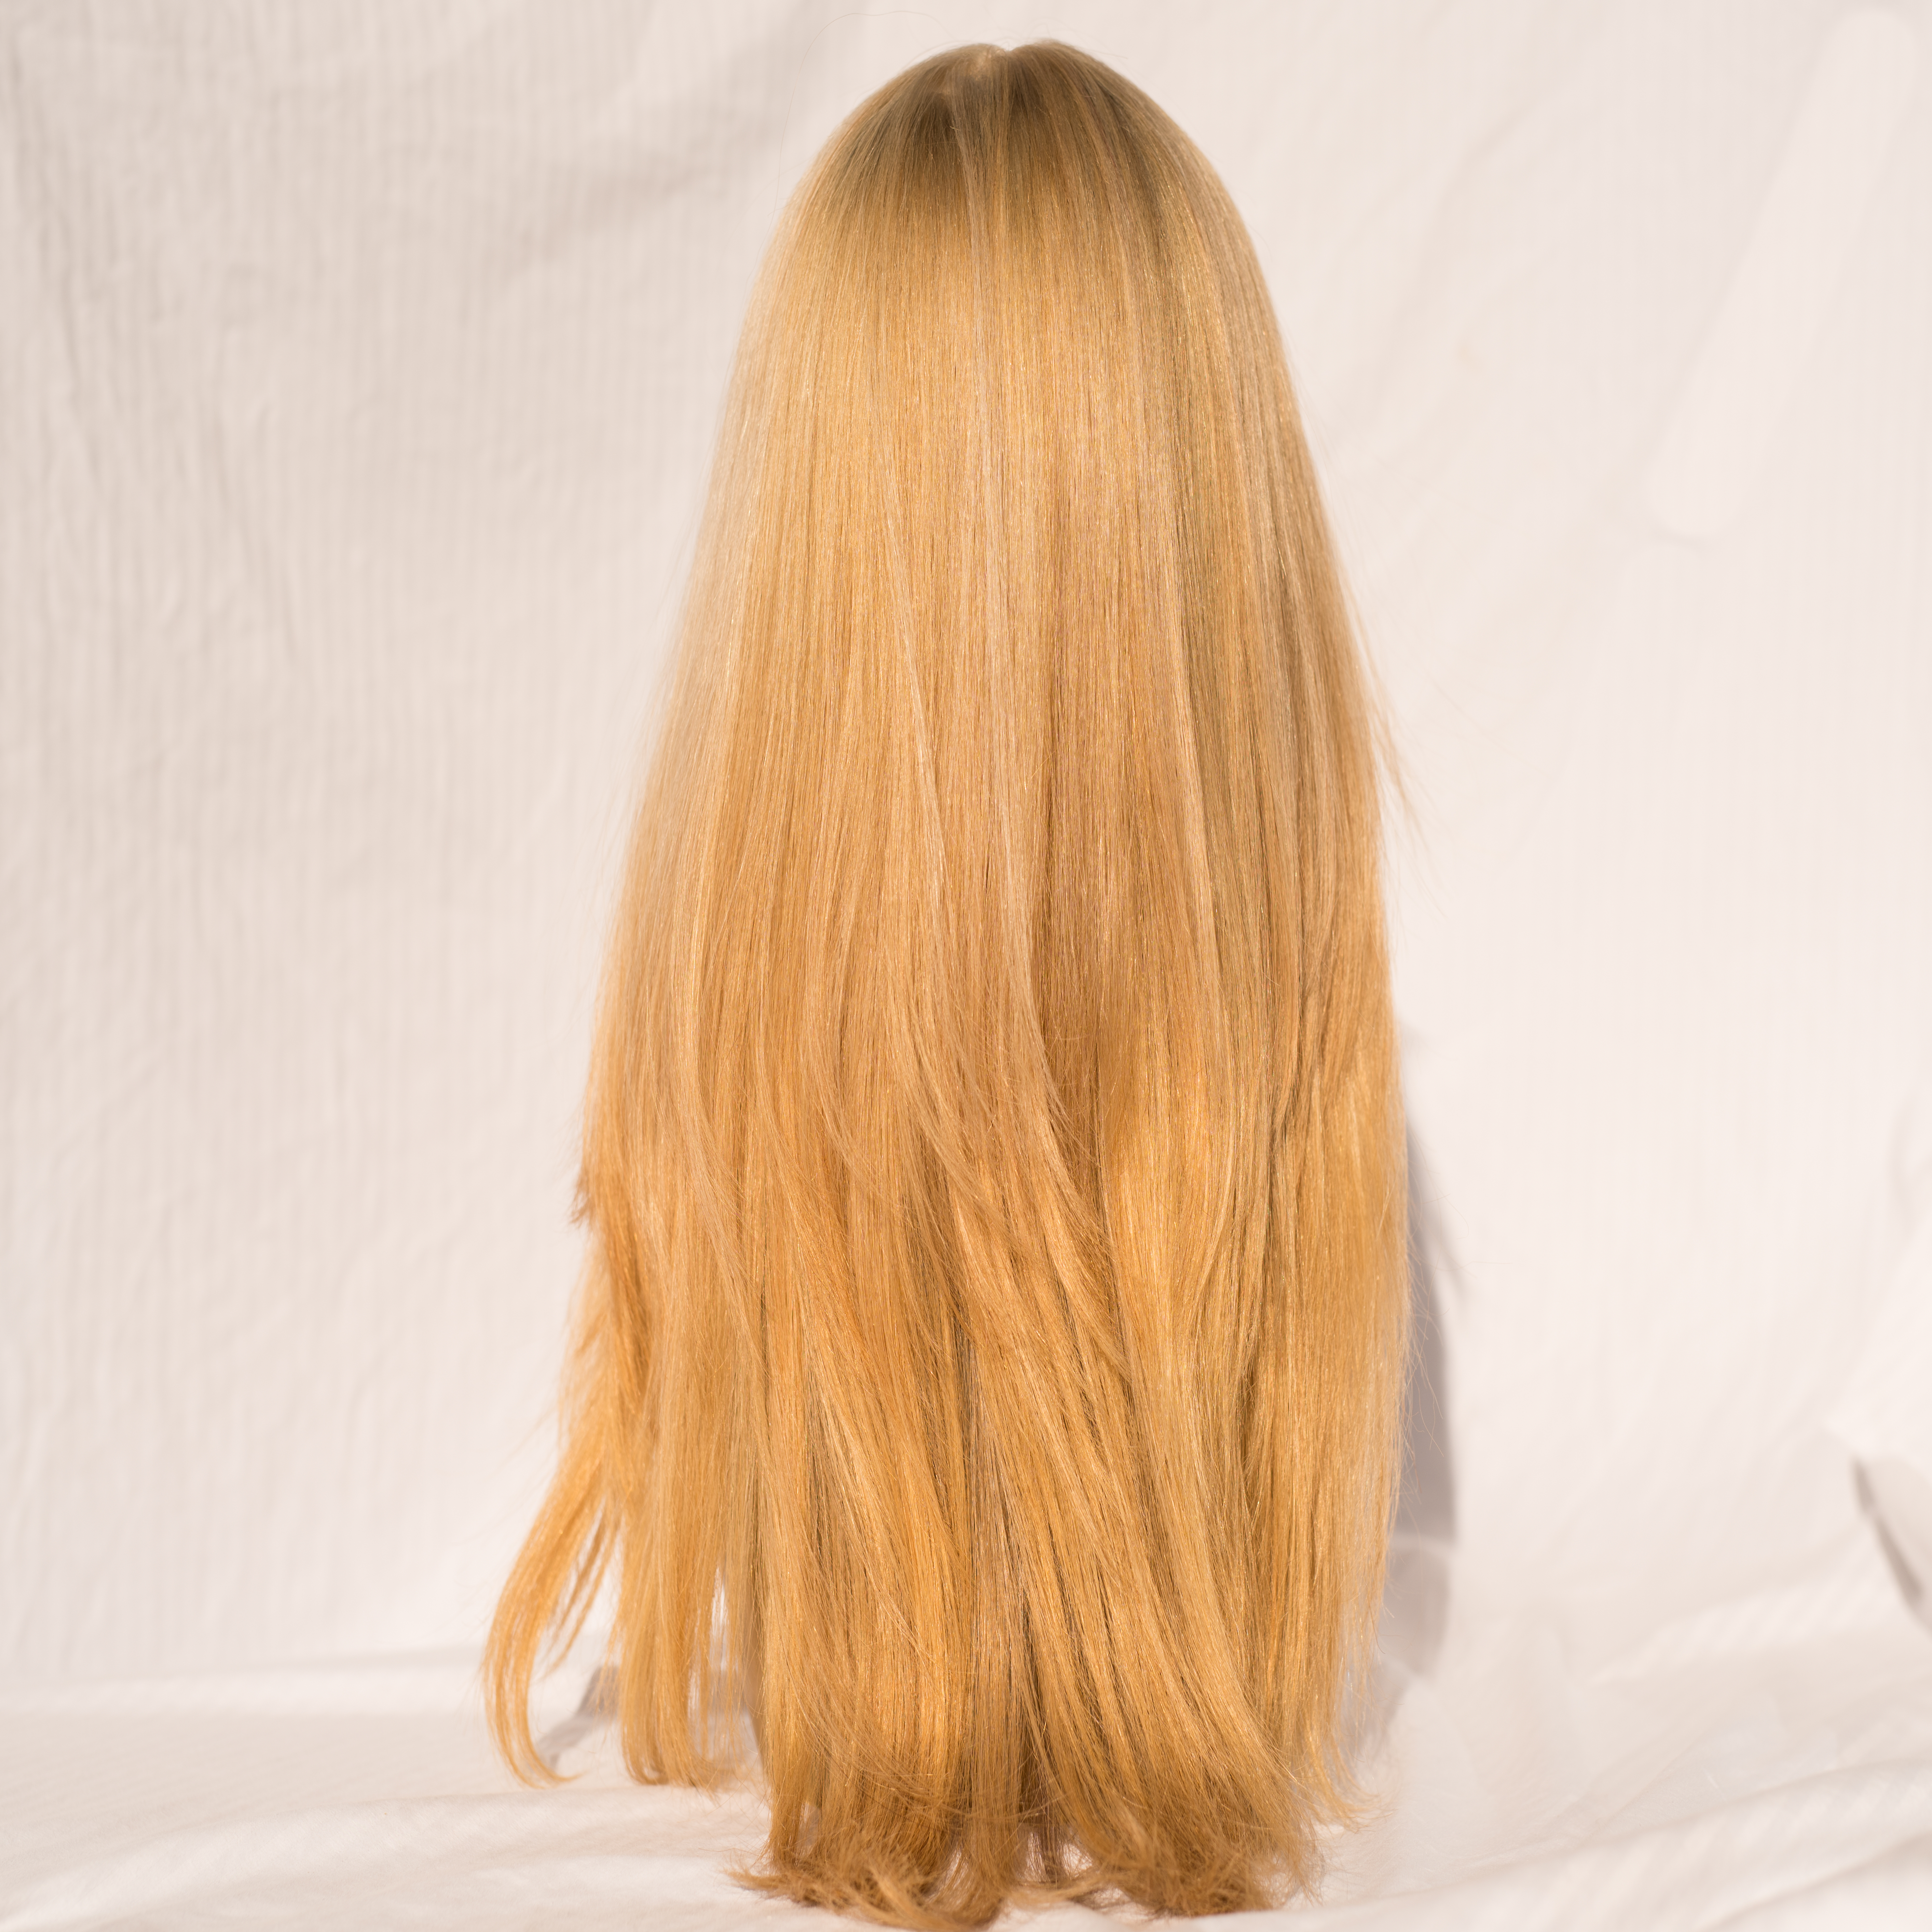 Wig Russian Virgin Remy Hair 23 Inches Color 2224 Wig Overruns